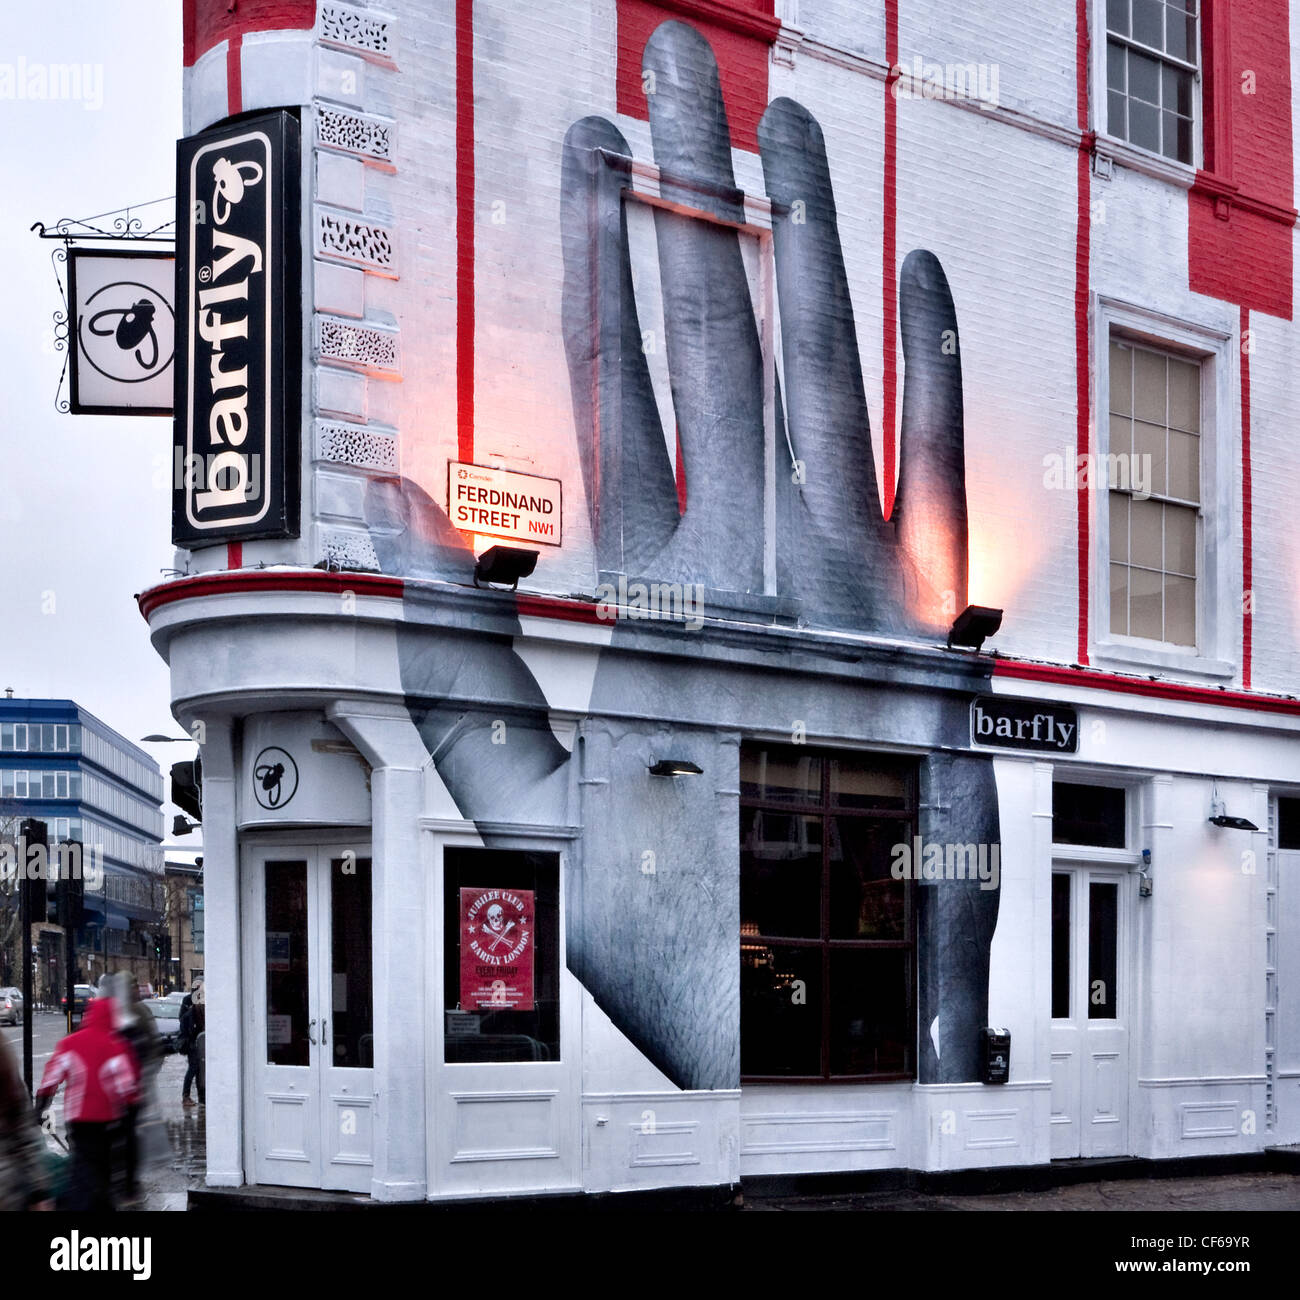 The Barfly live music venue in Camden Town London UK - Stock Image